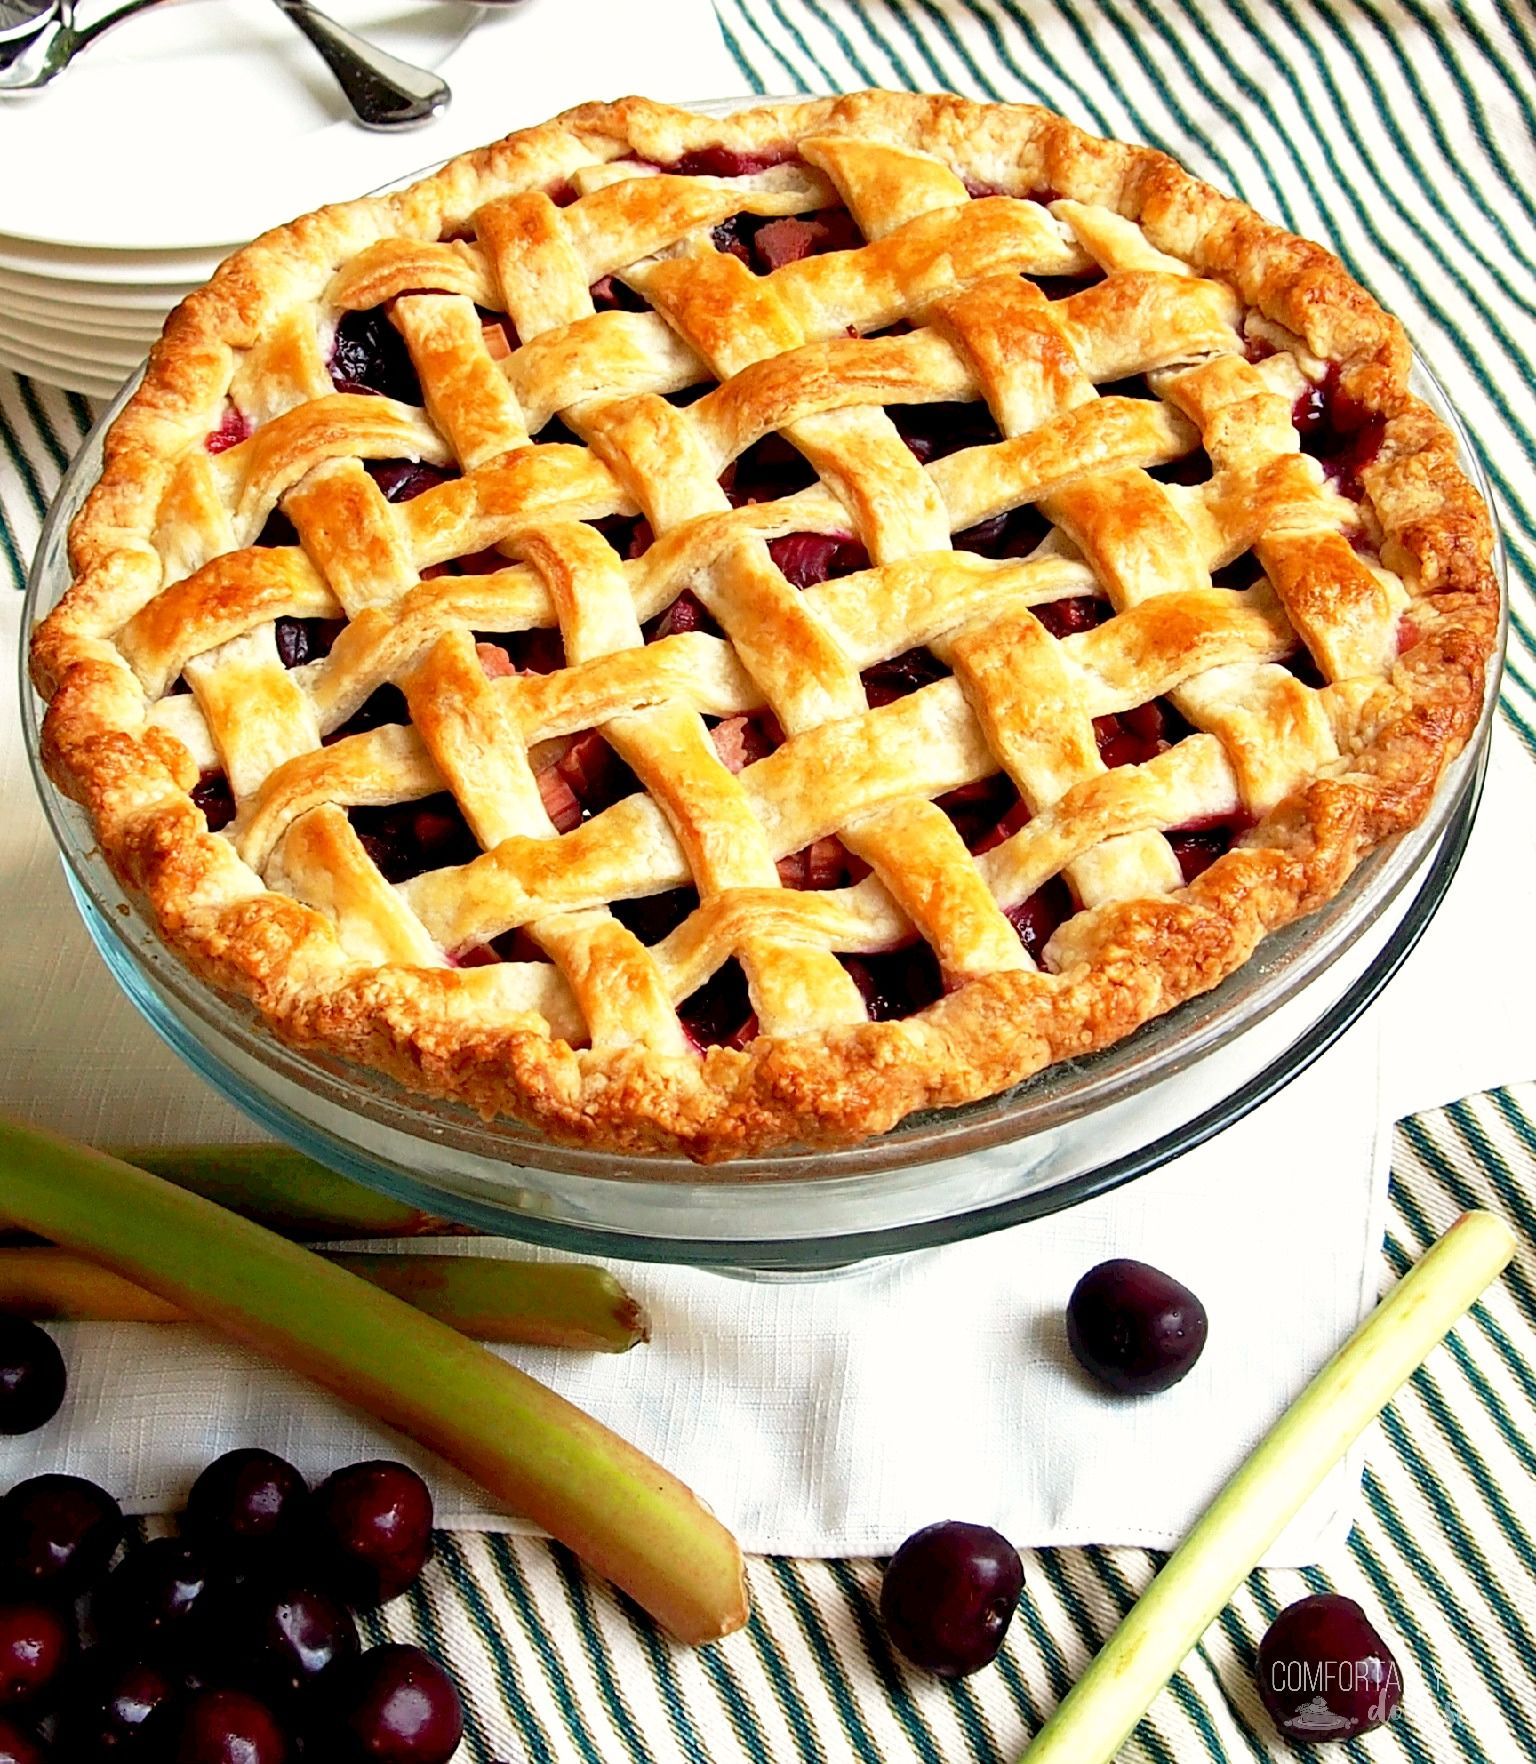 Jam pie in a hurry: recipes, cooking features and recommendations 97